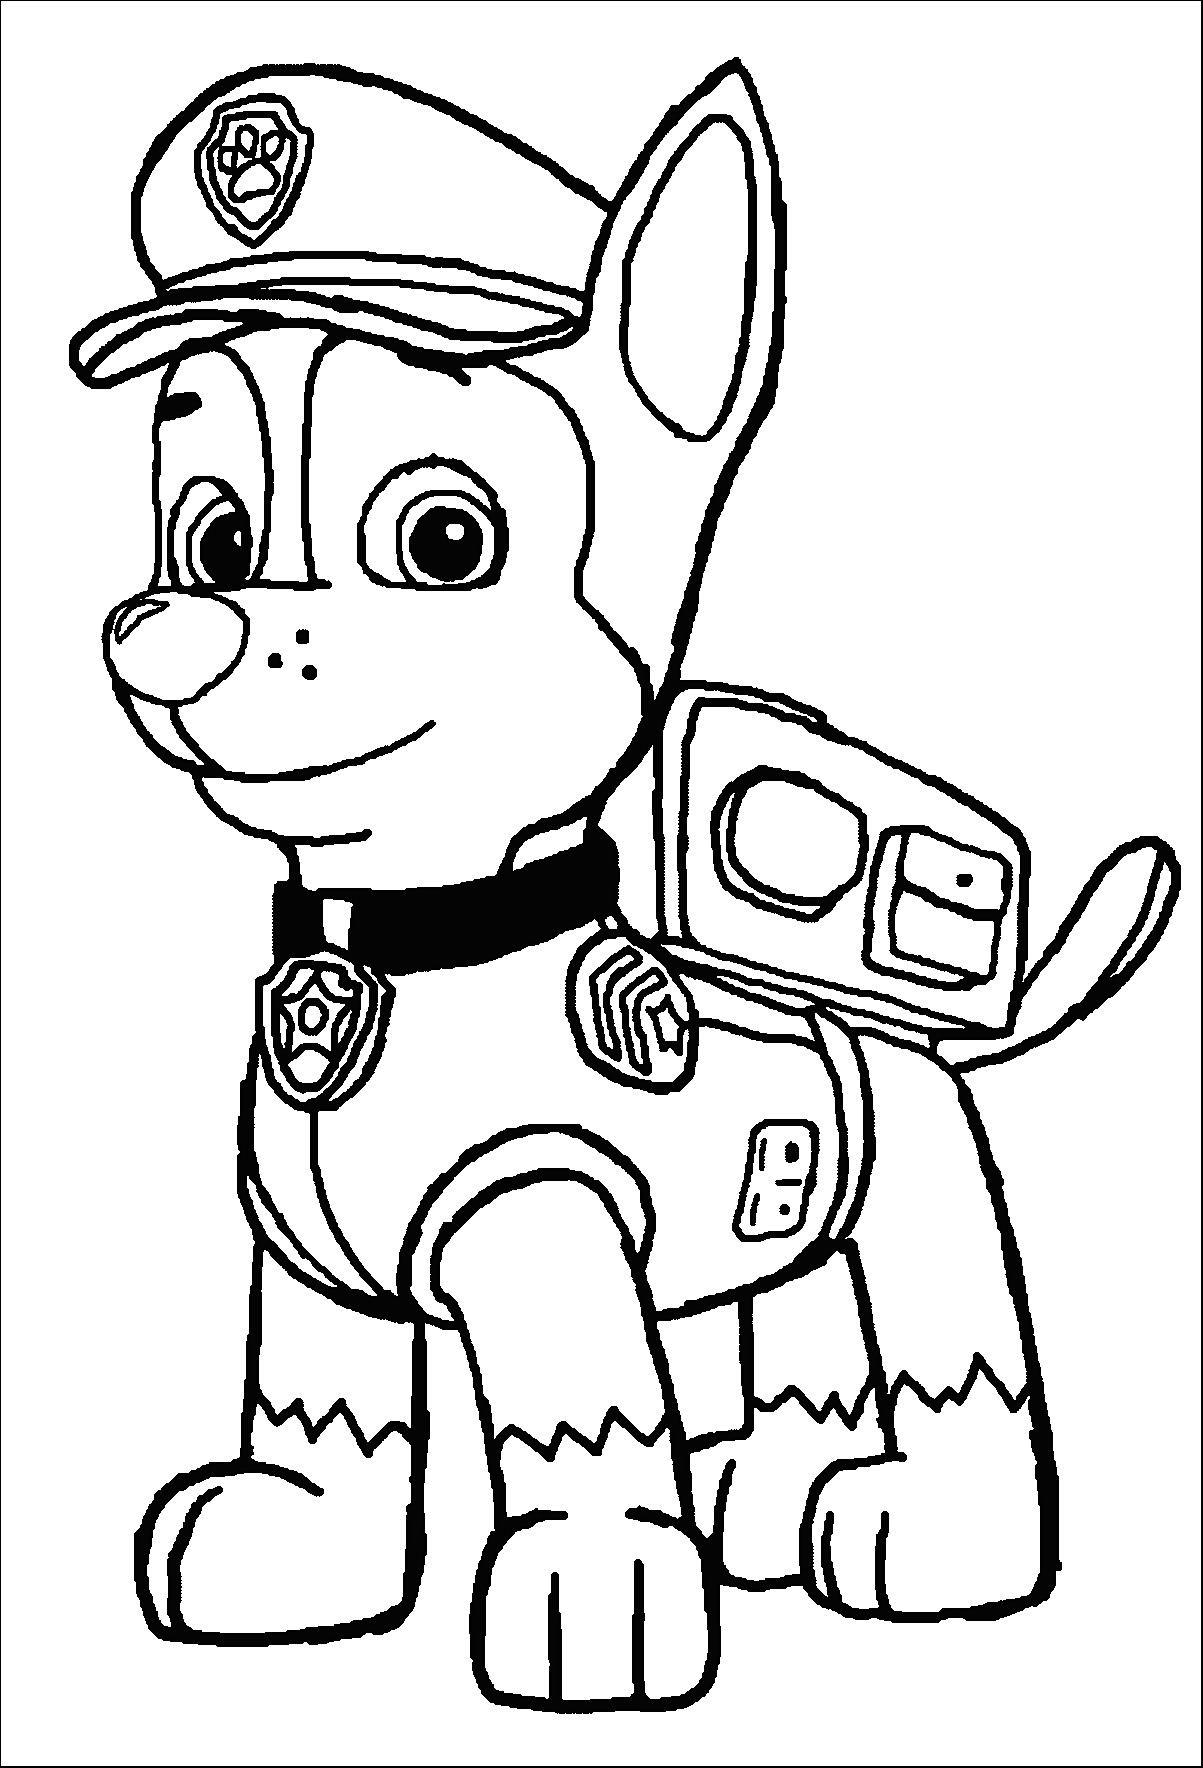 Paw clipart coloring page. Luxury chase patrol advance